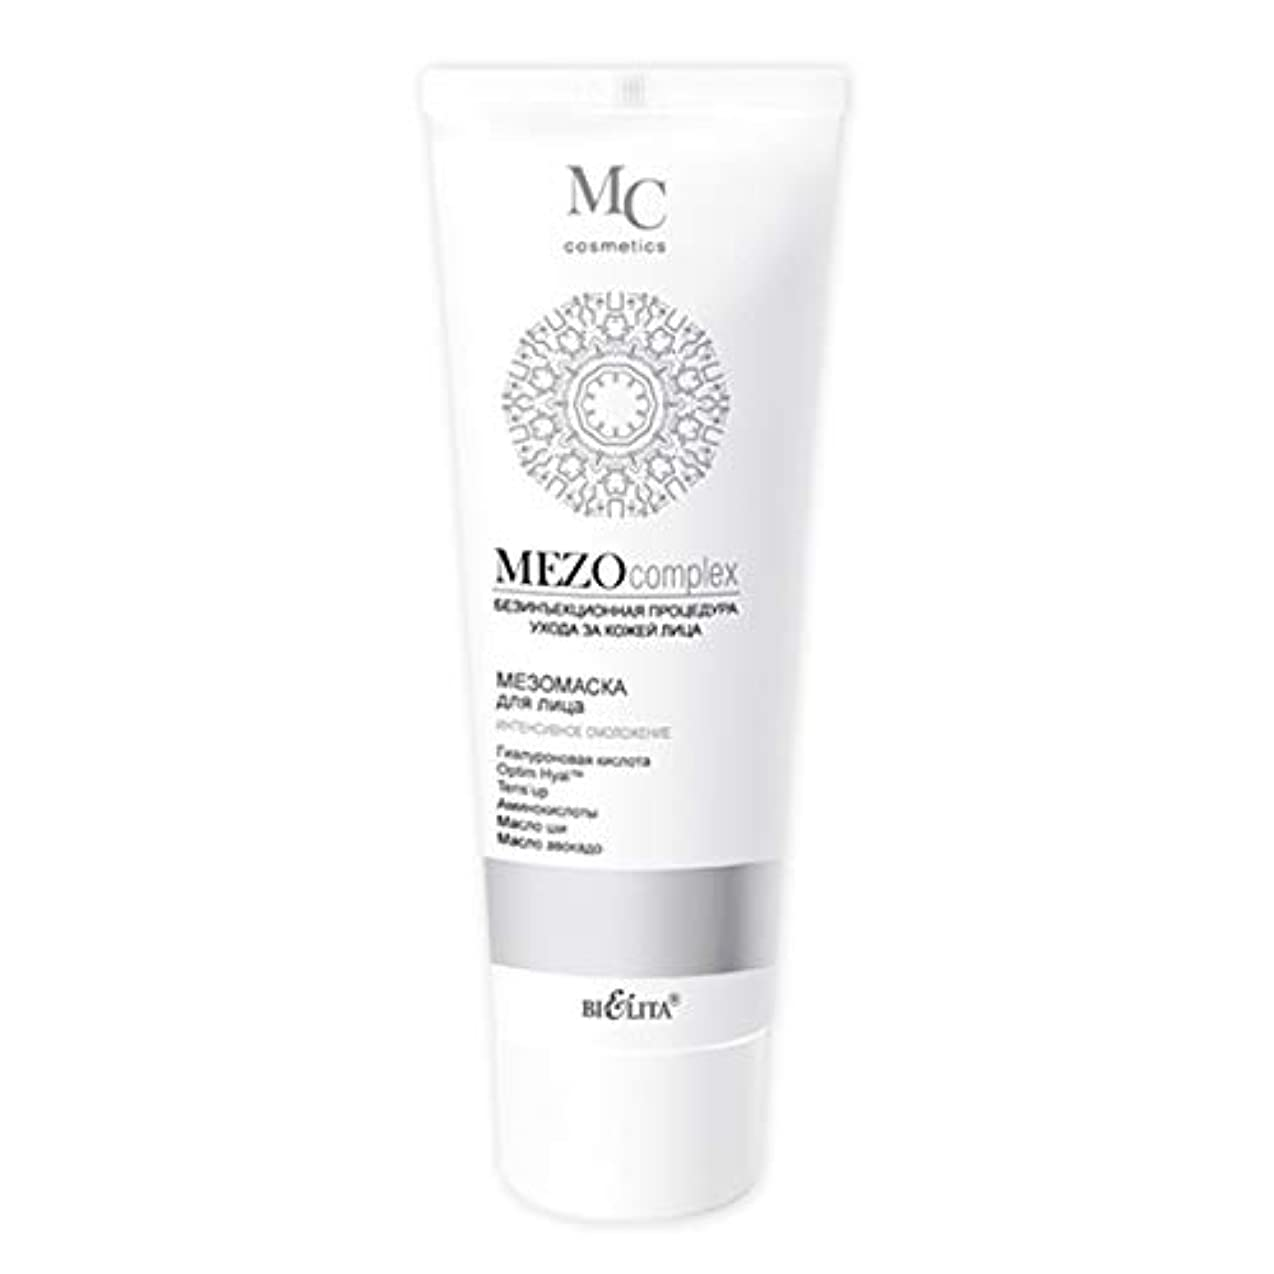 Mezo complex | Mezo MASK for the face | Non-injection facial skin care procedure | Hyaluronic acid | Optim Hyal...